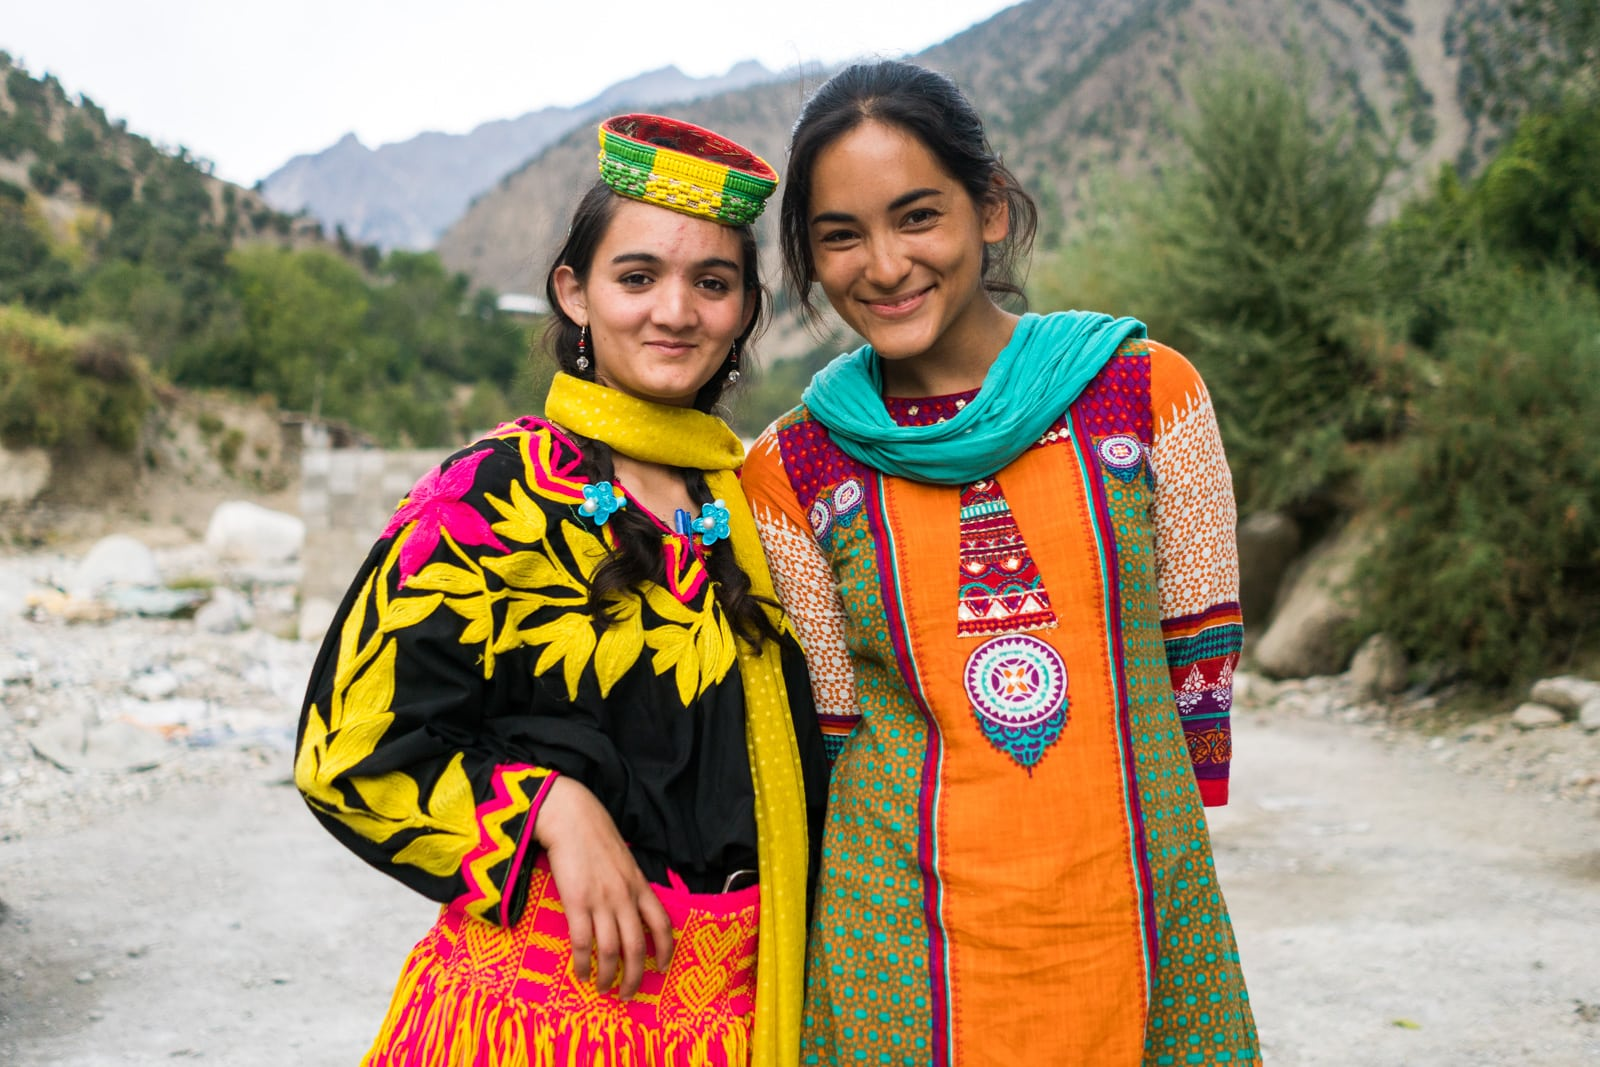 Foreign visitor posing with a Kalasha girl